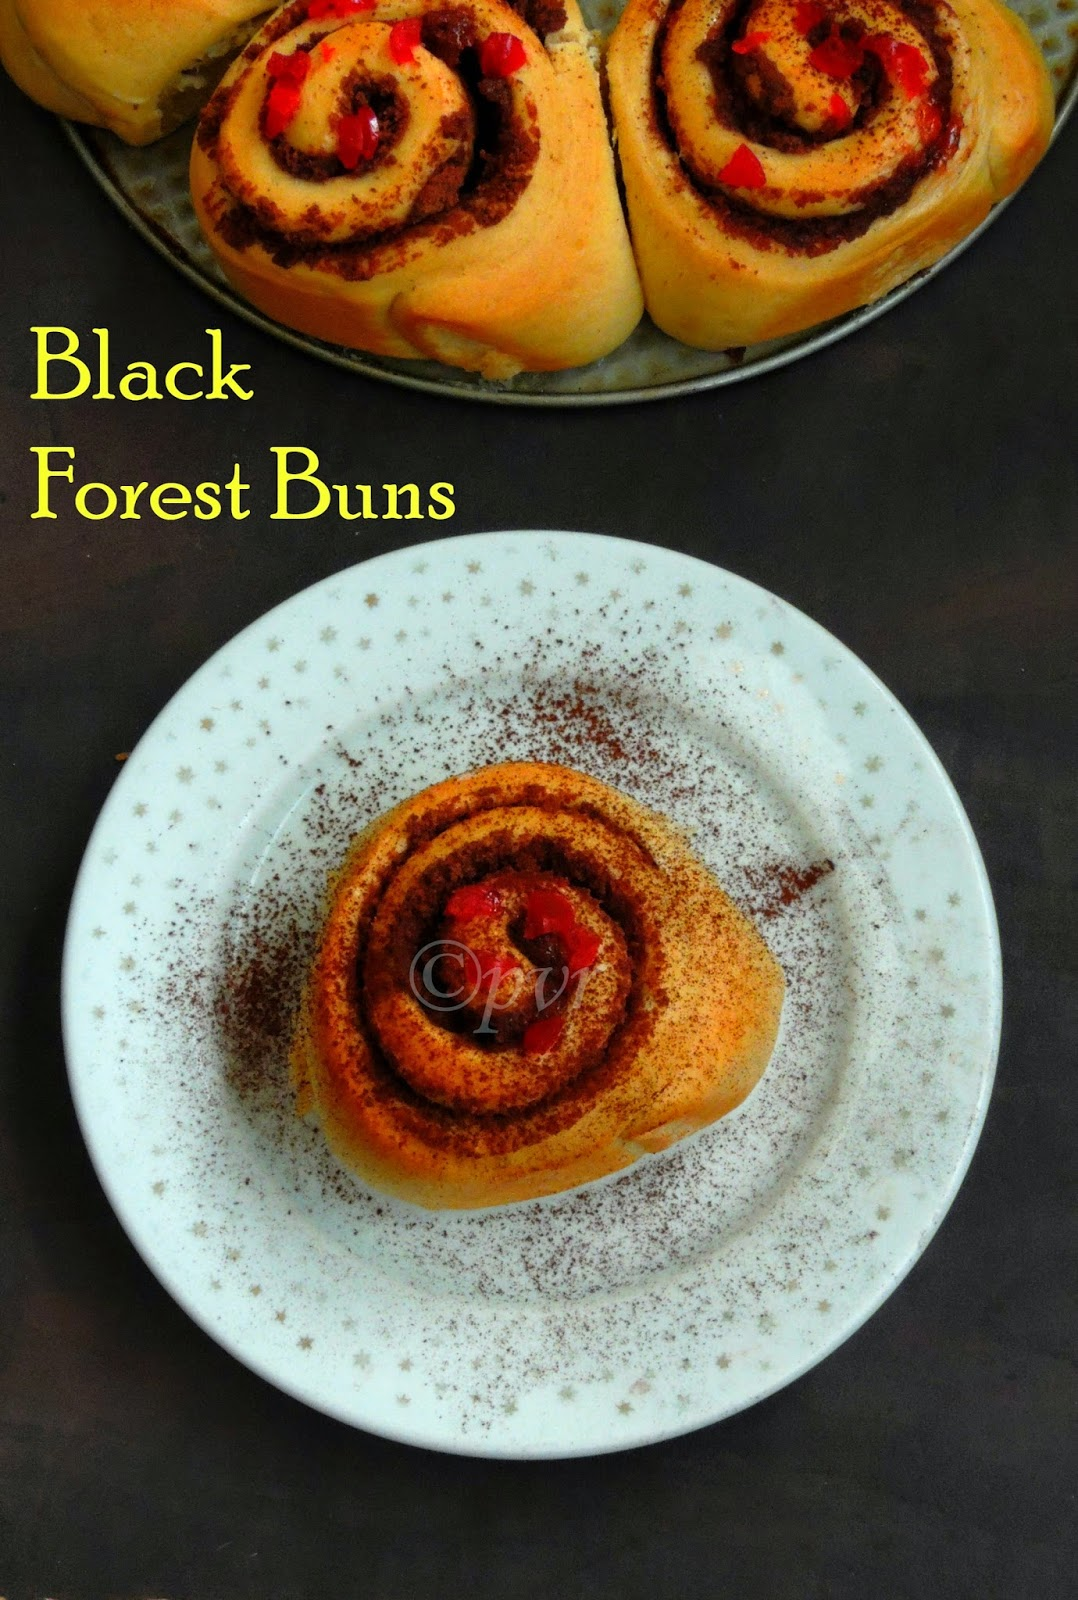 Black forest buns, cerise topped Black forest buns